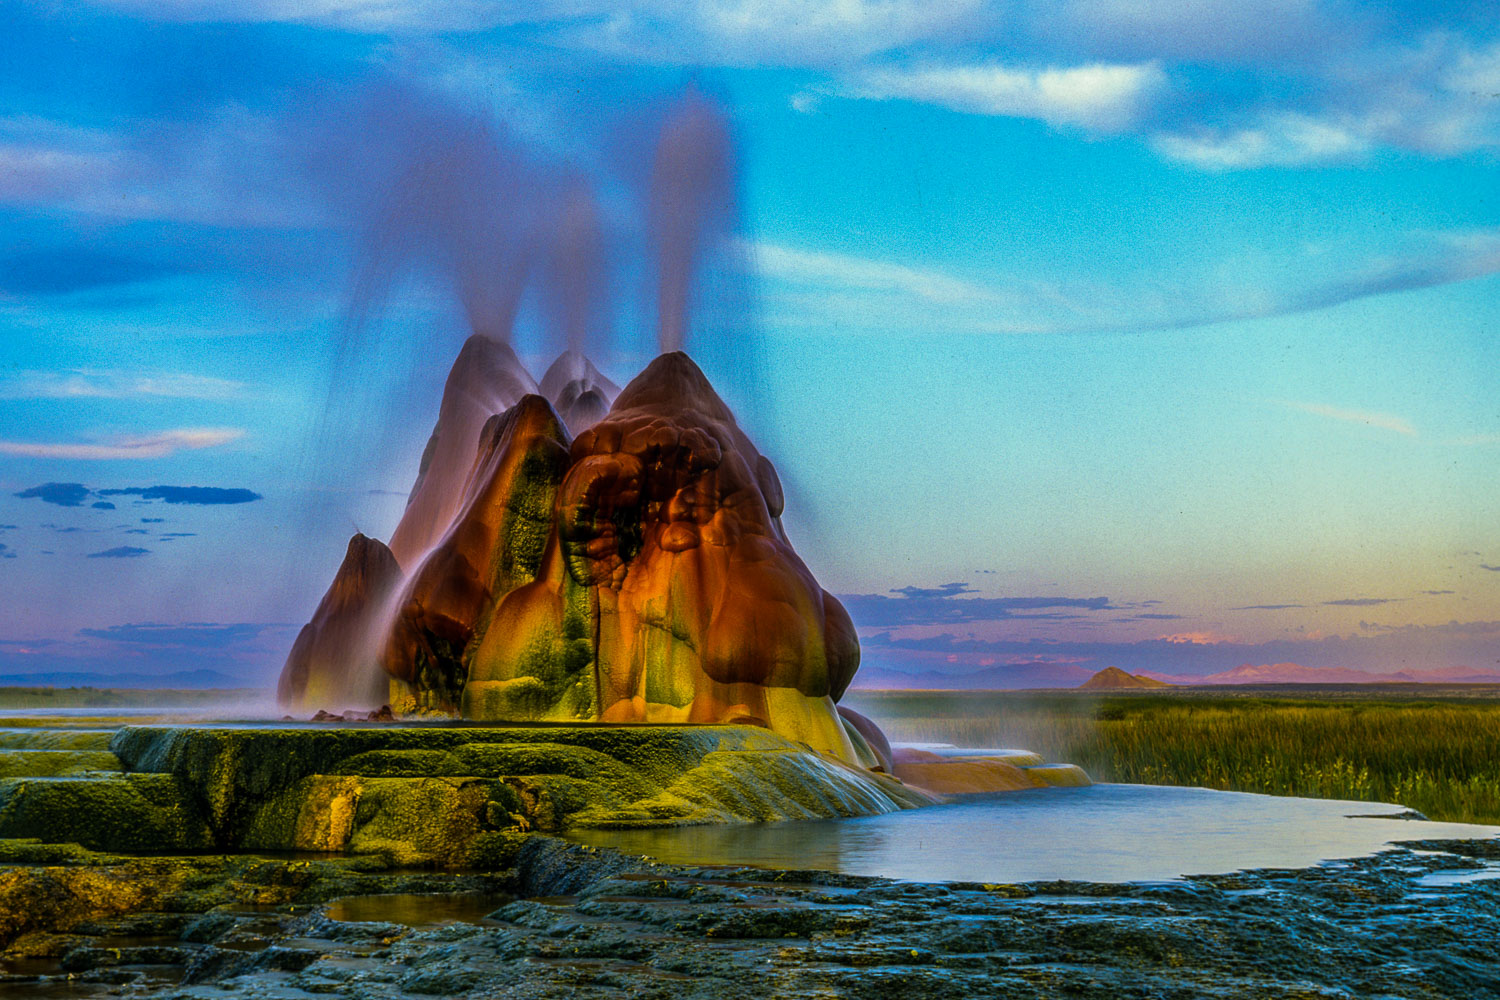 """Fountain Fantasia"", Fly Geyser purchased by Burning Man, Nevada"